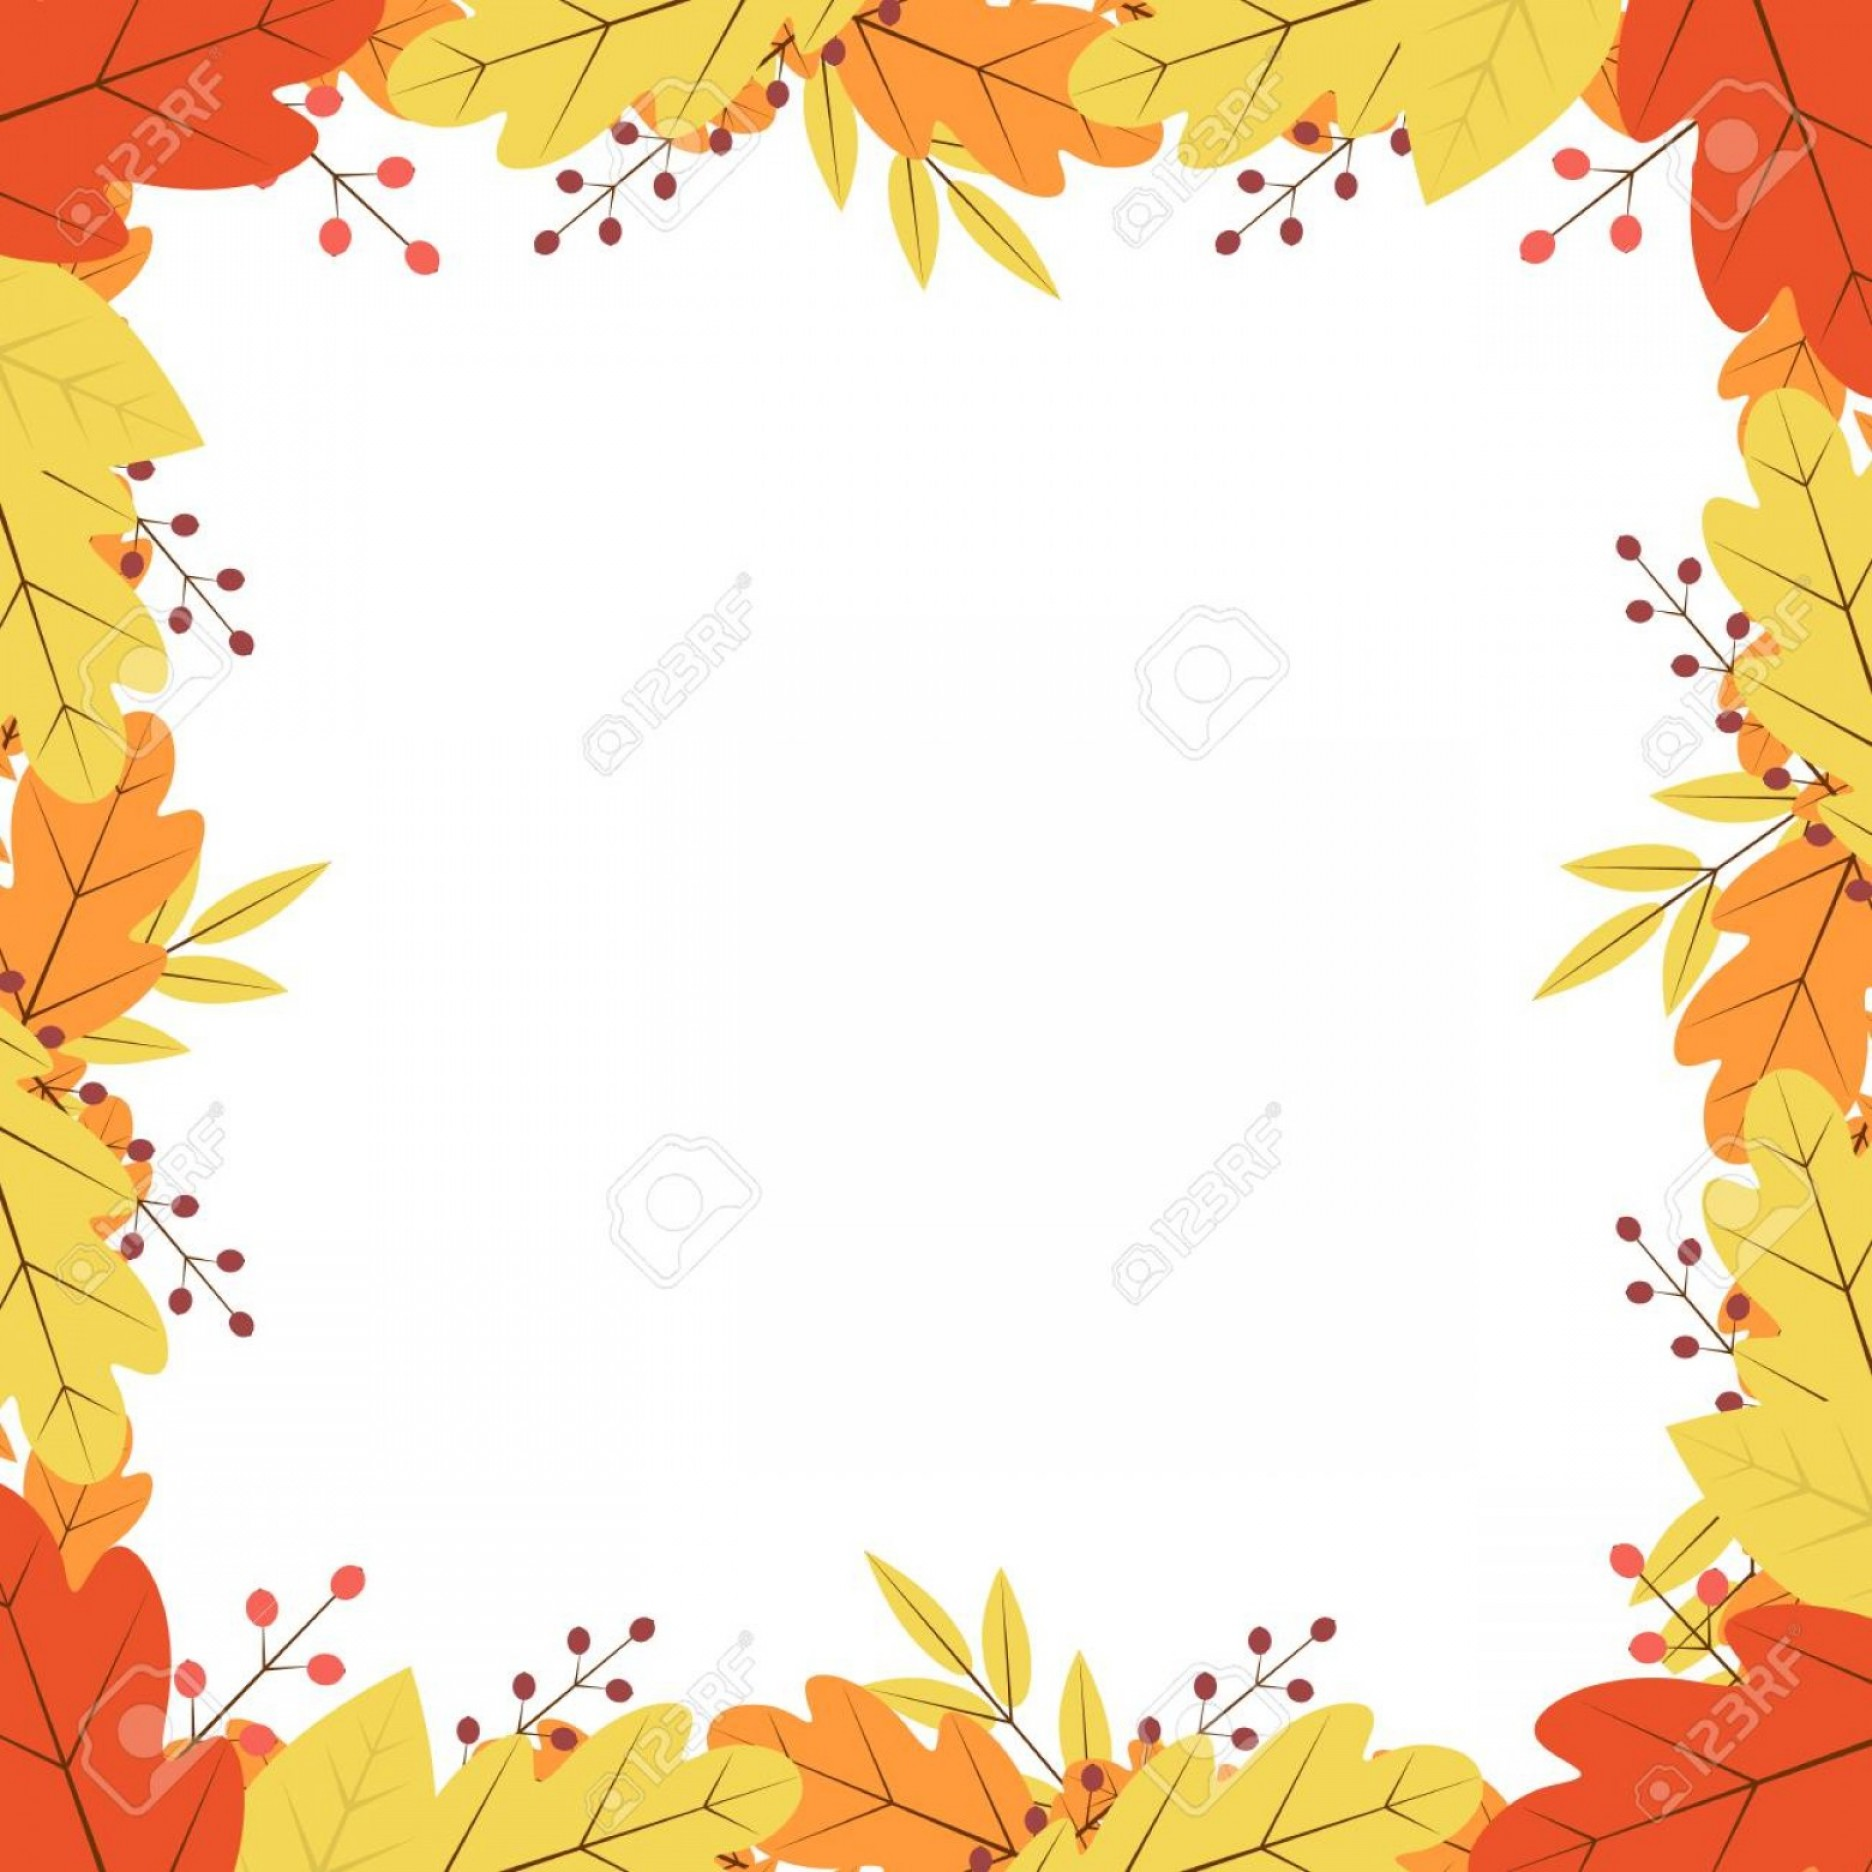 Thanksgiving Border Vector: Photostock Vector Border Of Colorful Autumn Leaves And Berries Fall Theme Vector Illustration Thanksgiving Day Greetin